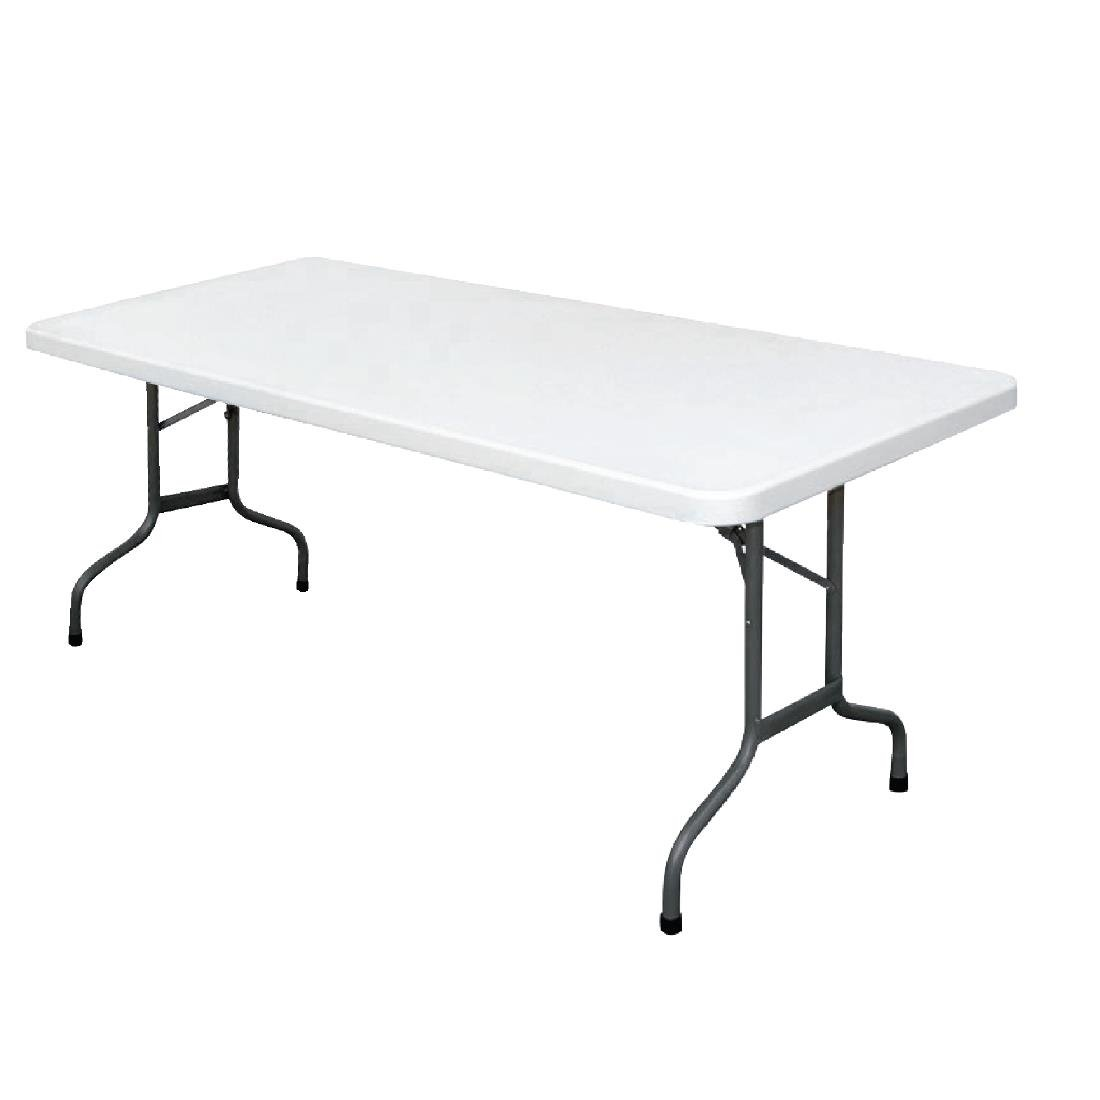 Bolero Foldaway Rectangular Utility Table 6ft U579 Buy line